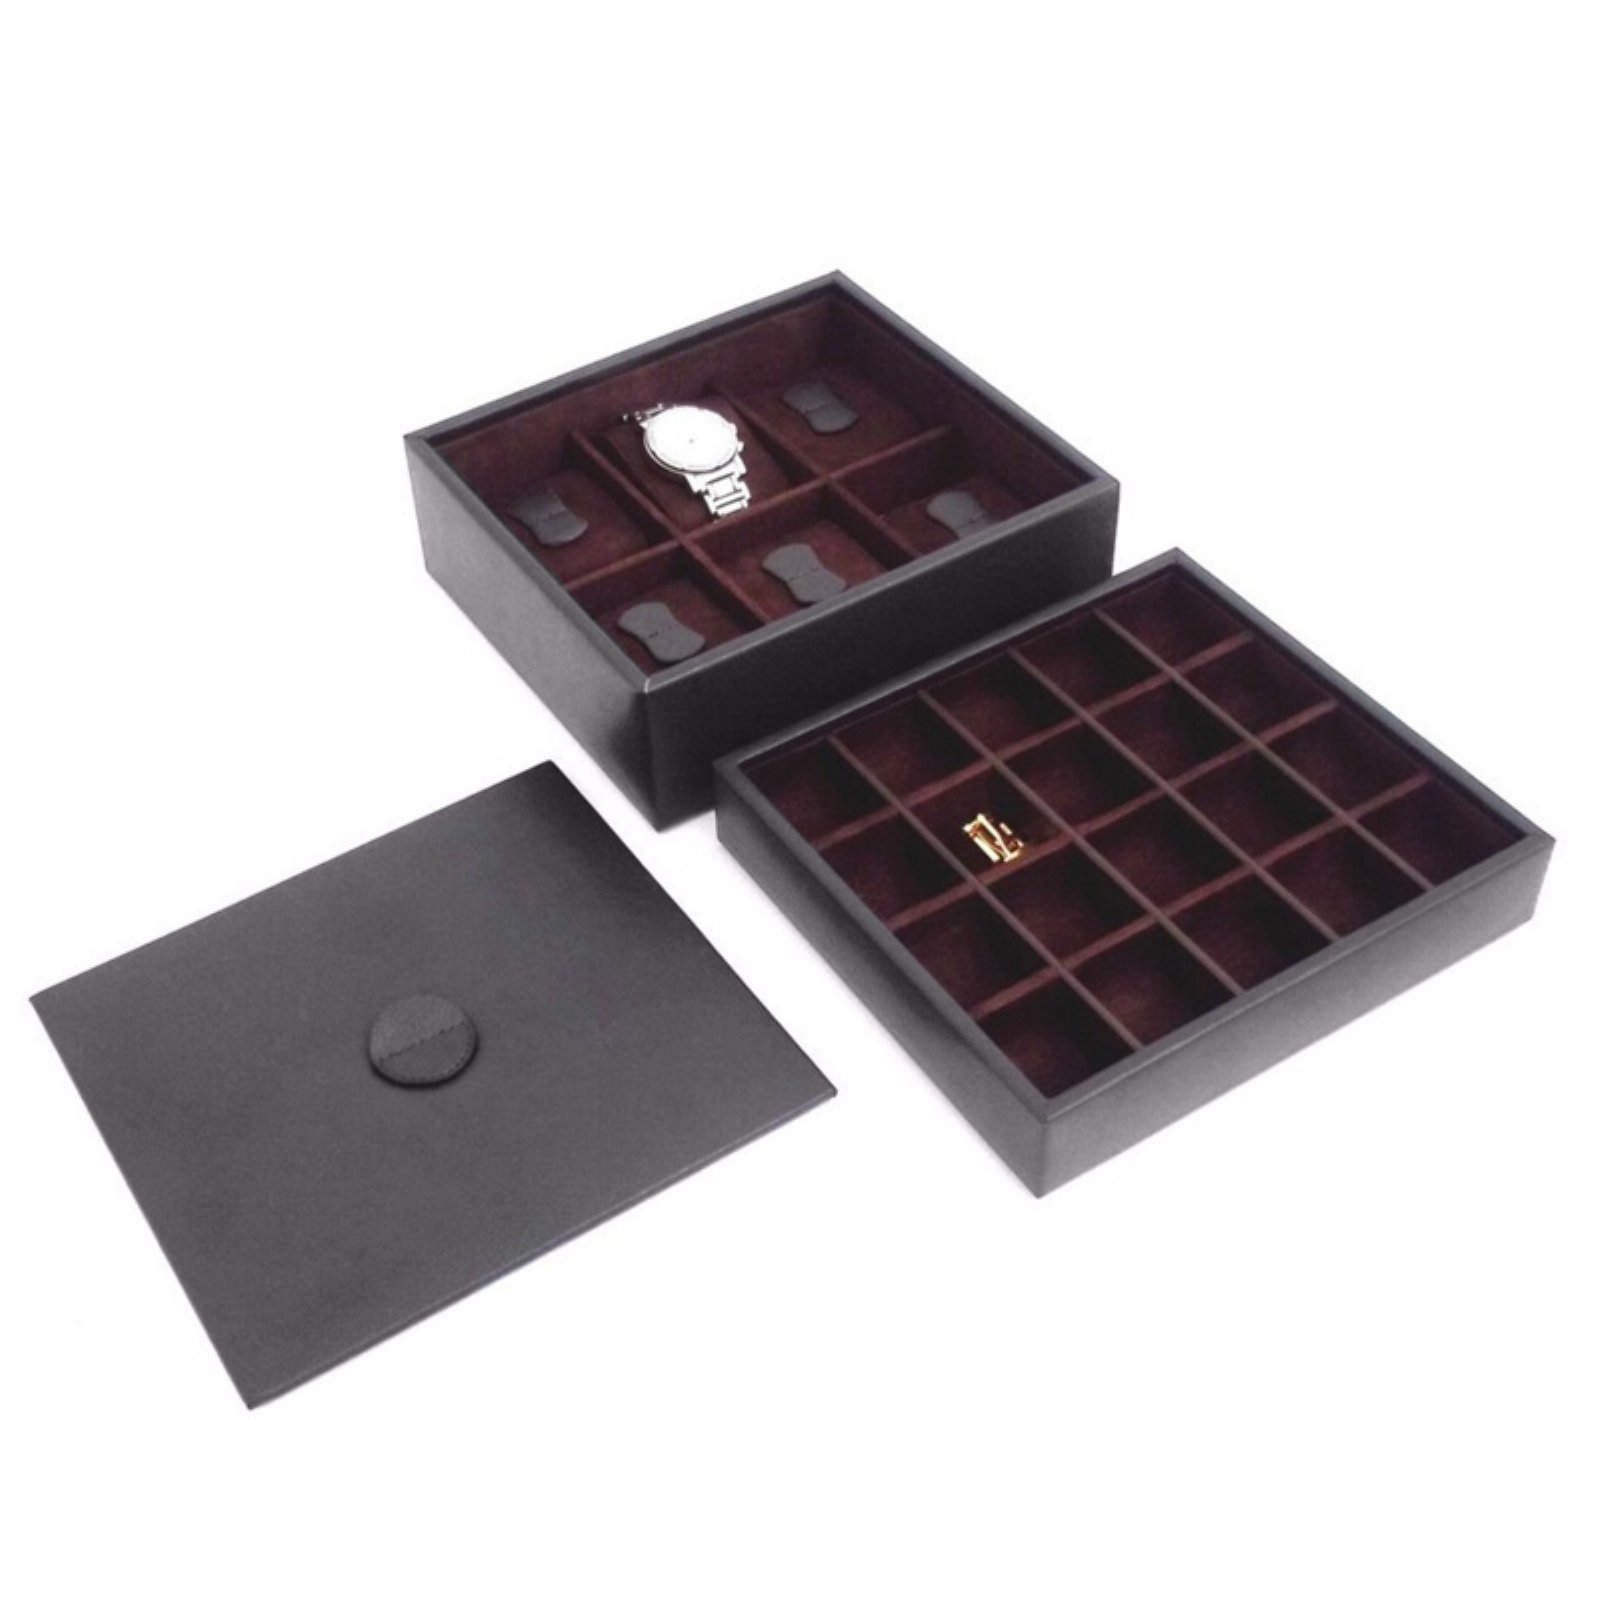 Brown Leather 6-Watch / 20-Cufflink Box with Lid - 8.5W x 4.75H in.